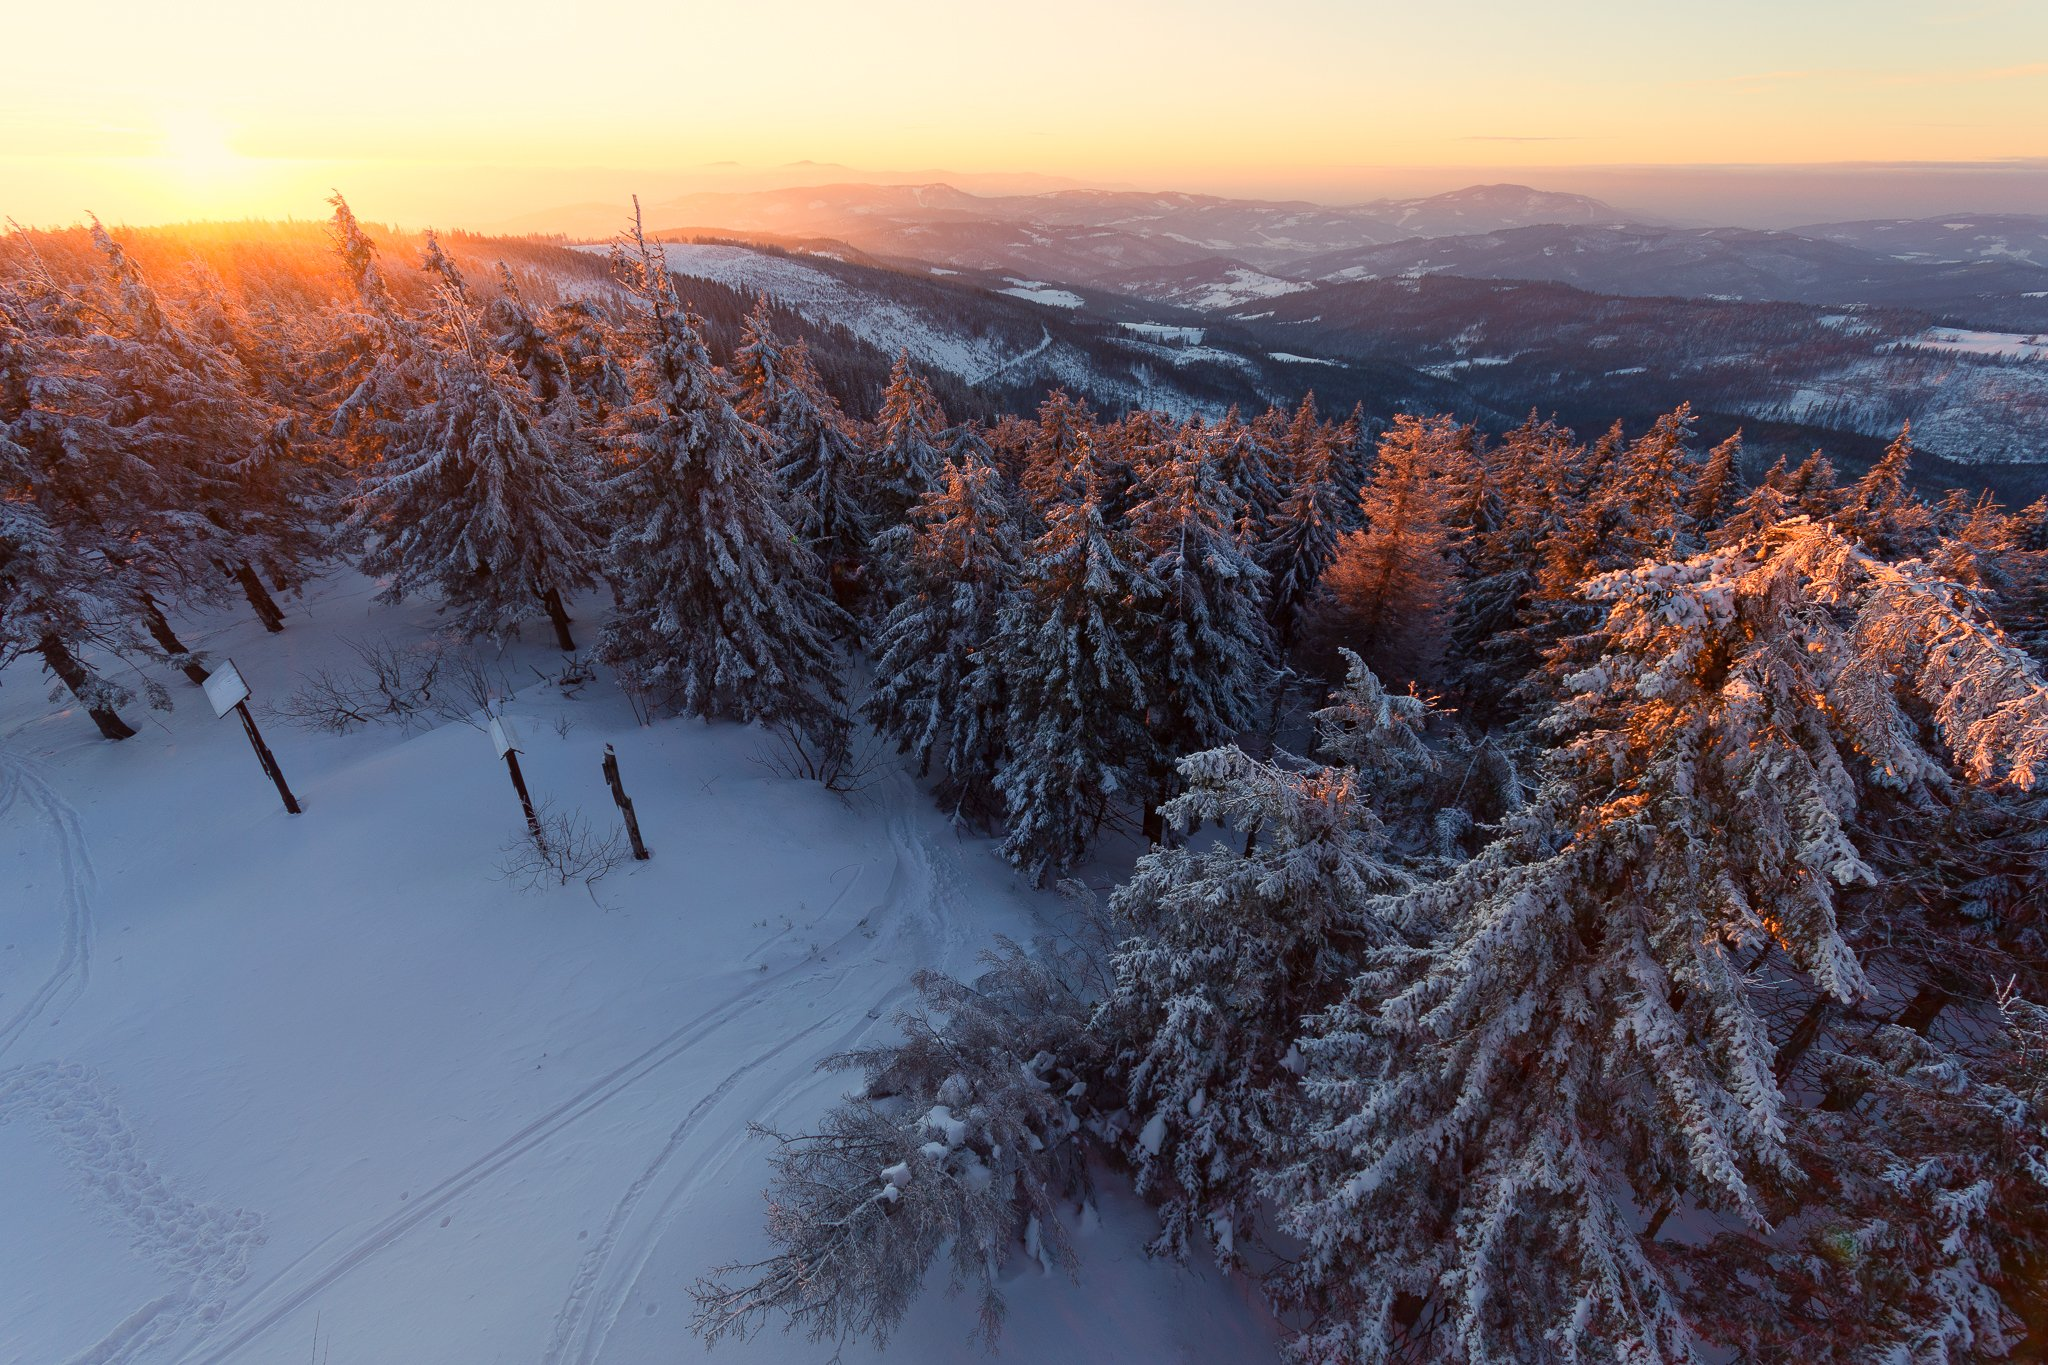 sunset,mountains,forest,trees,snow,frost,frozen,evening,cold, Marcin Mucharski